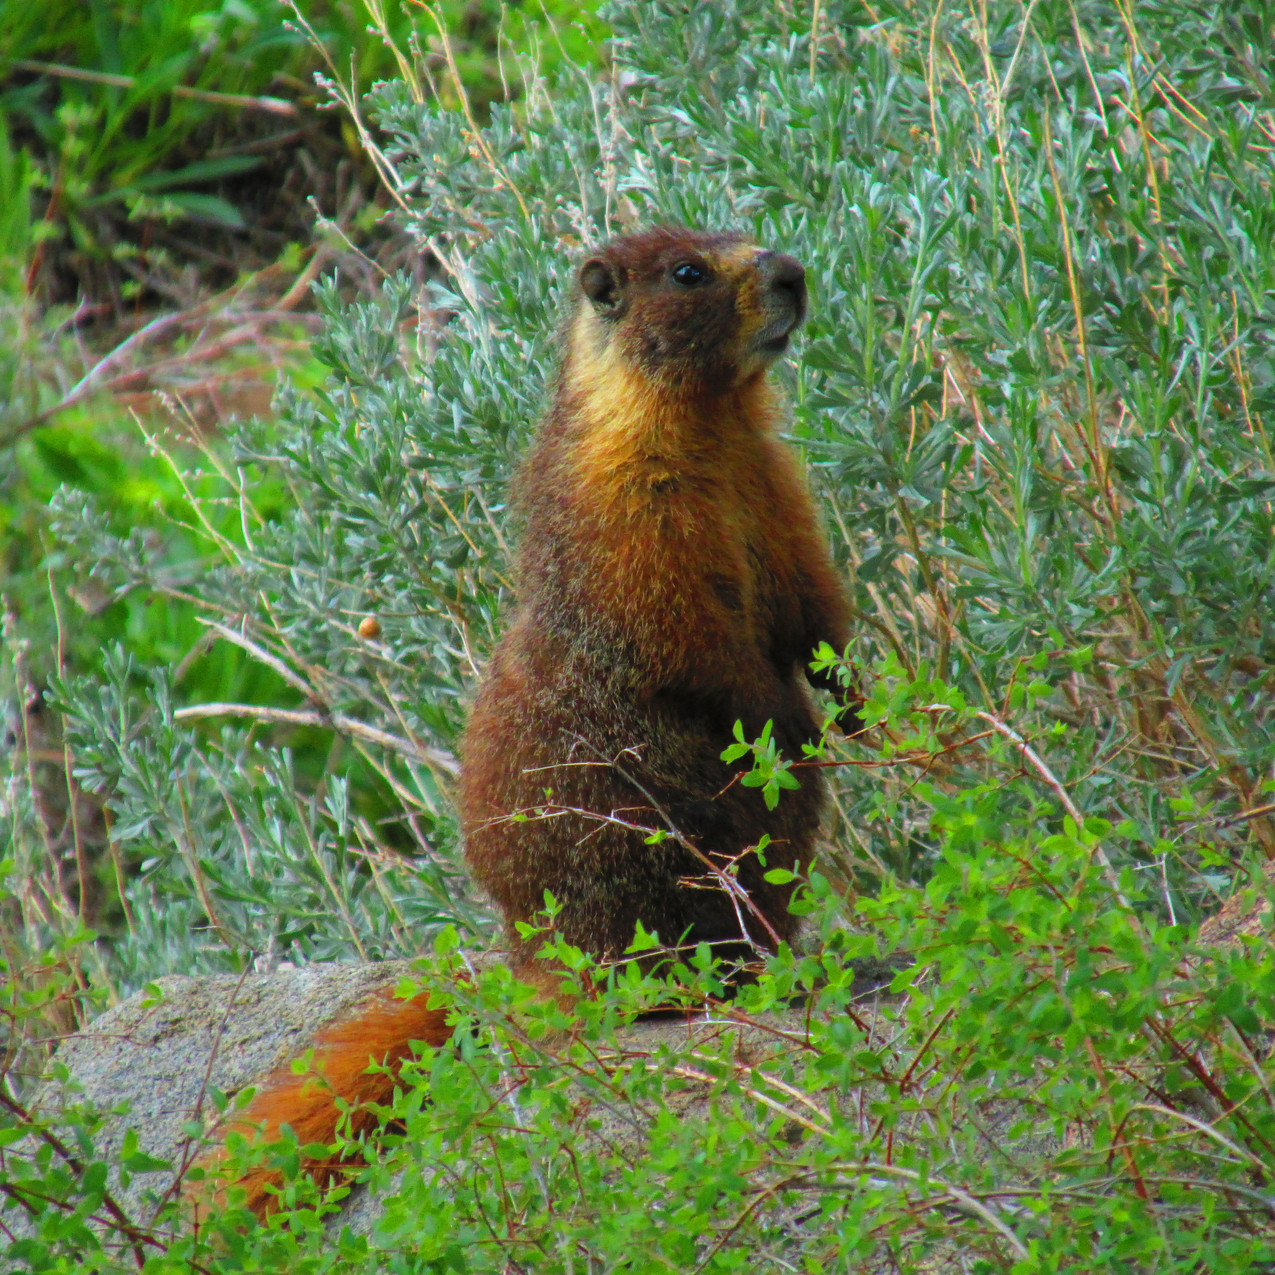 This marmot posed for me.  How nice of him.